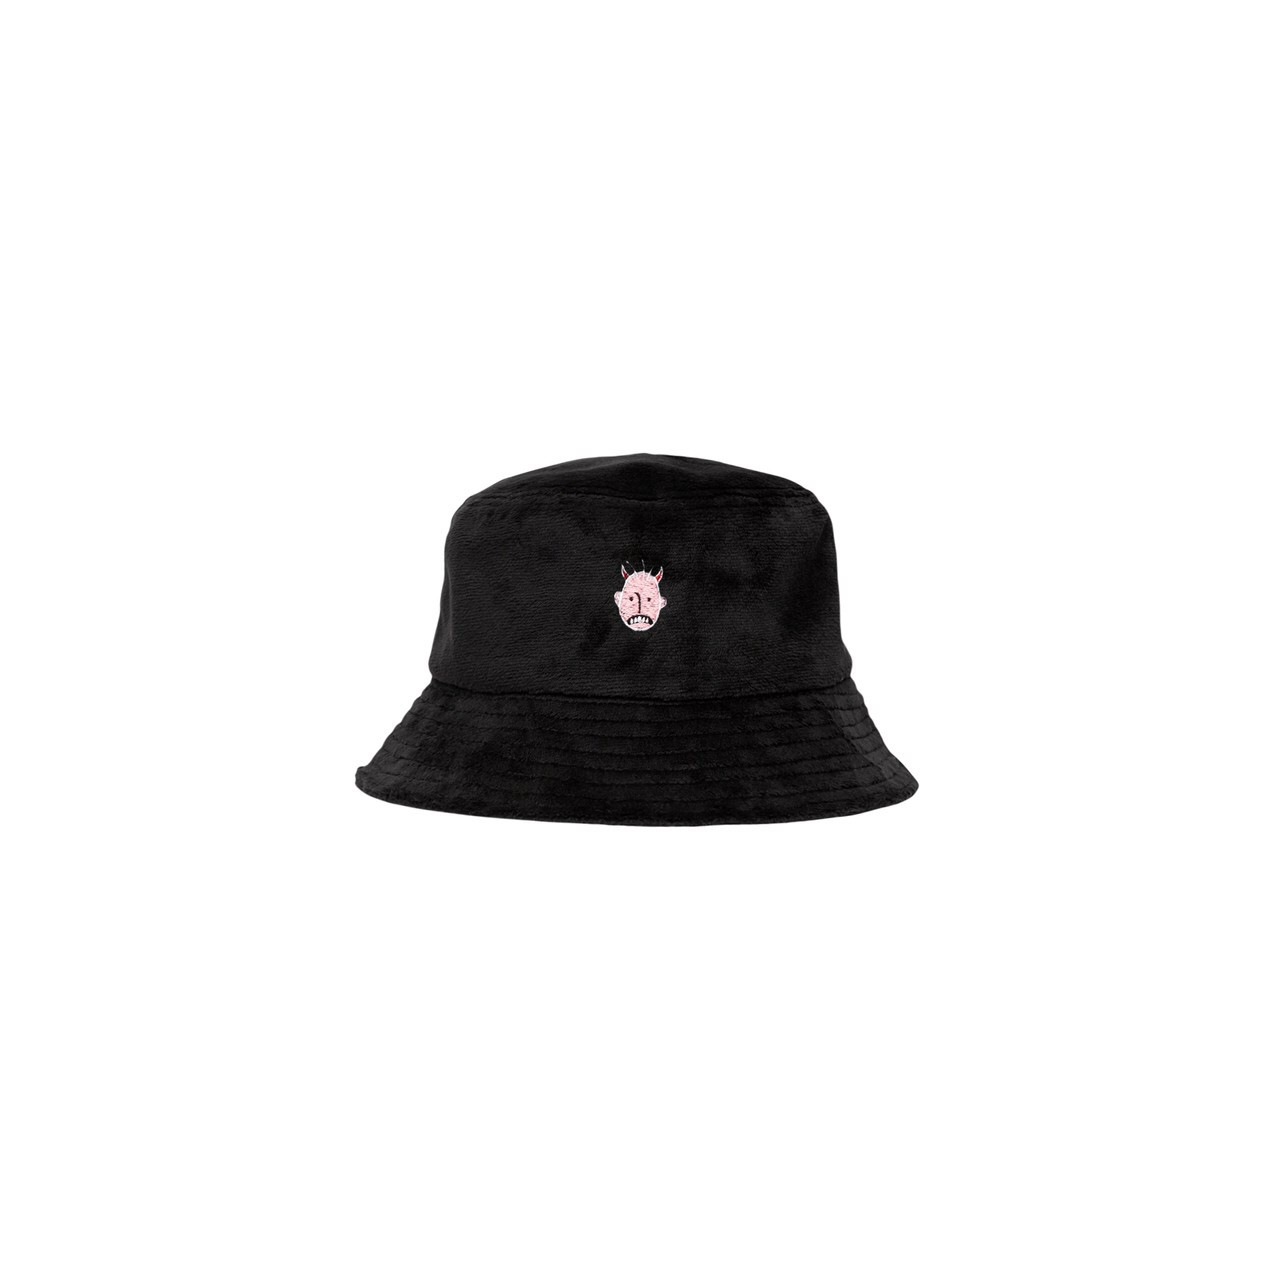 UXRY CLUB IMOTO BLACK MAGIC BUCKET HAT BLACK